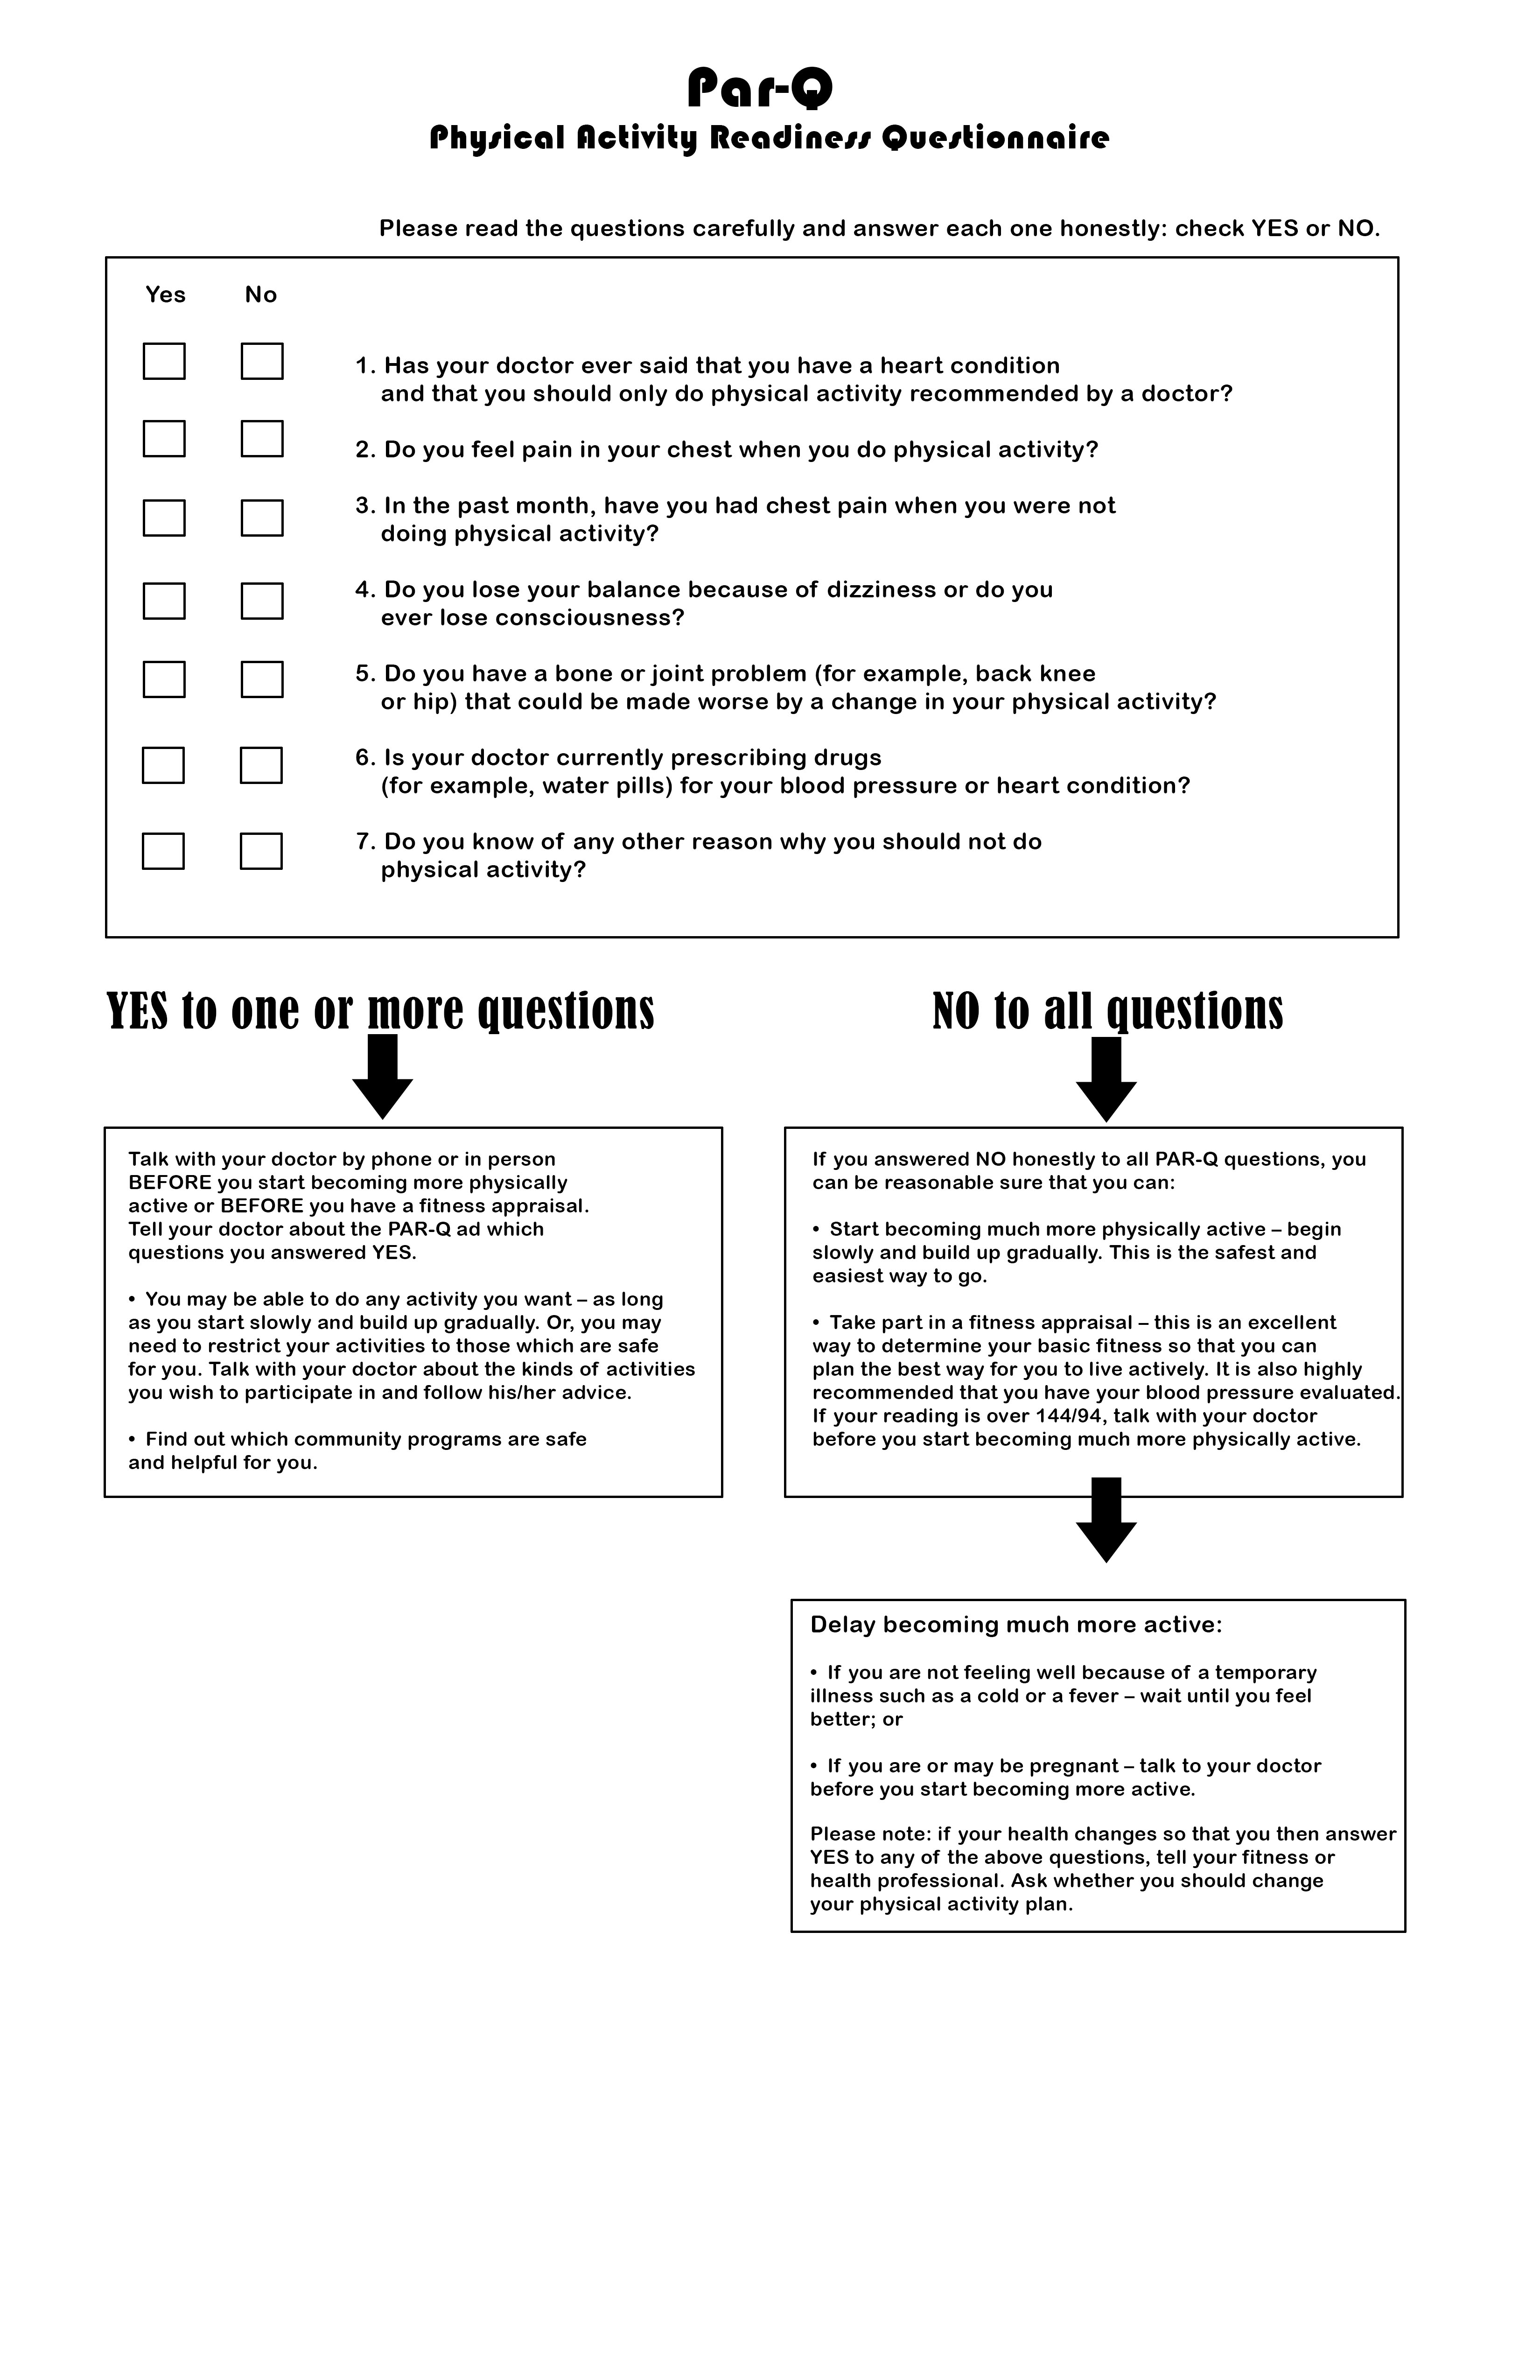 Unusual 1 Page Resume Format For Freshers Thick 1 Year Experienced Java Resume Flat 1 Year Experienced Software Developer Resume Sample 10 Steps Writing Resume Young 10 Tips To Write A Good Resume Yellow1500 Claim Form Template Par Q Forms | Free Templates And Downloads